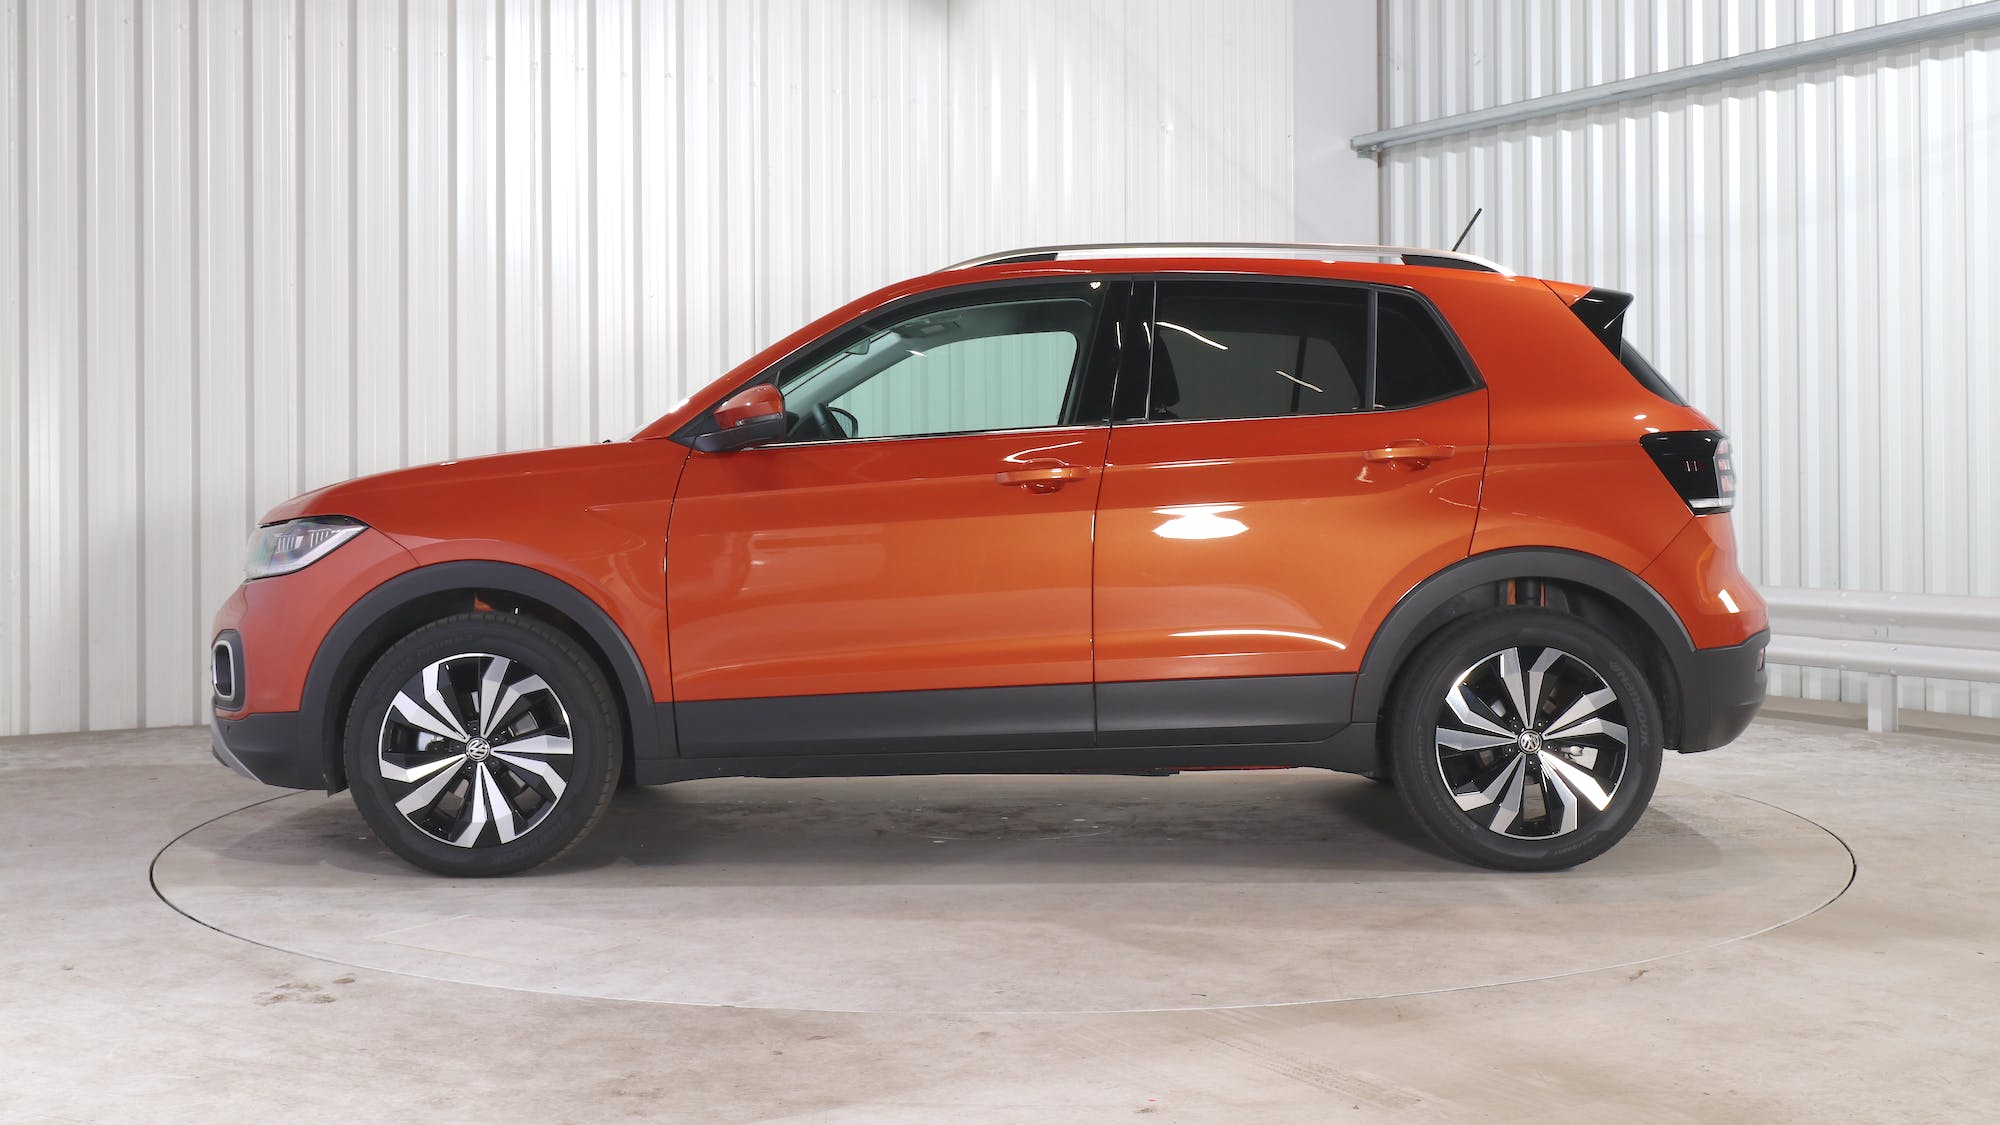 VOLKSWAGEN T-CROSS leasing exterior 2